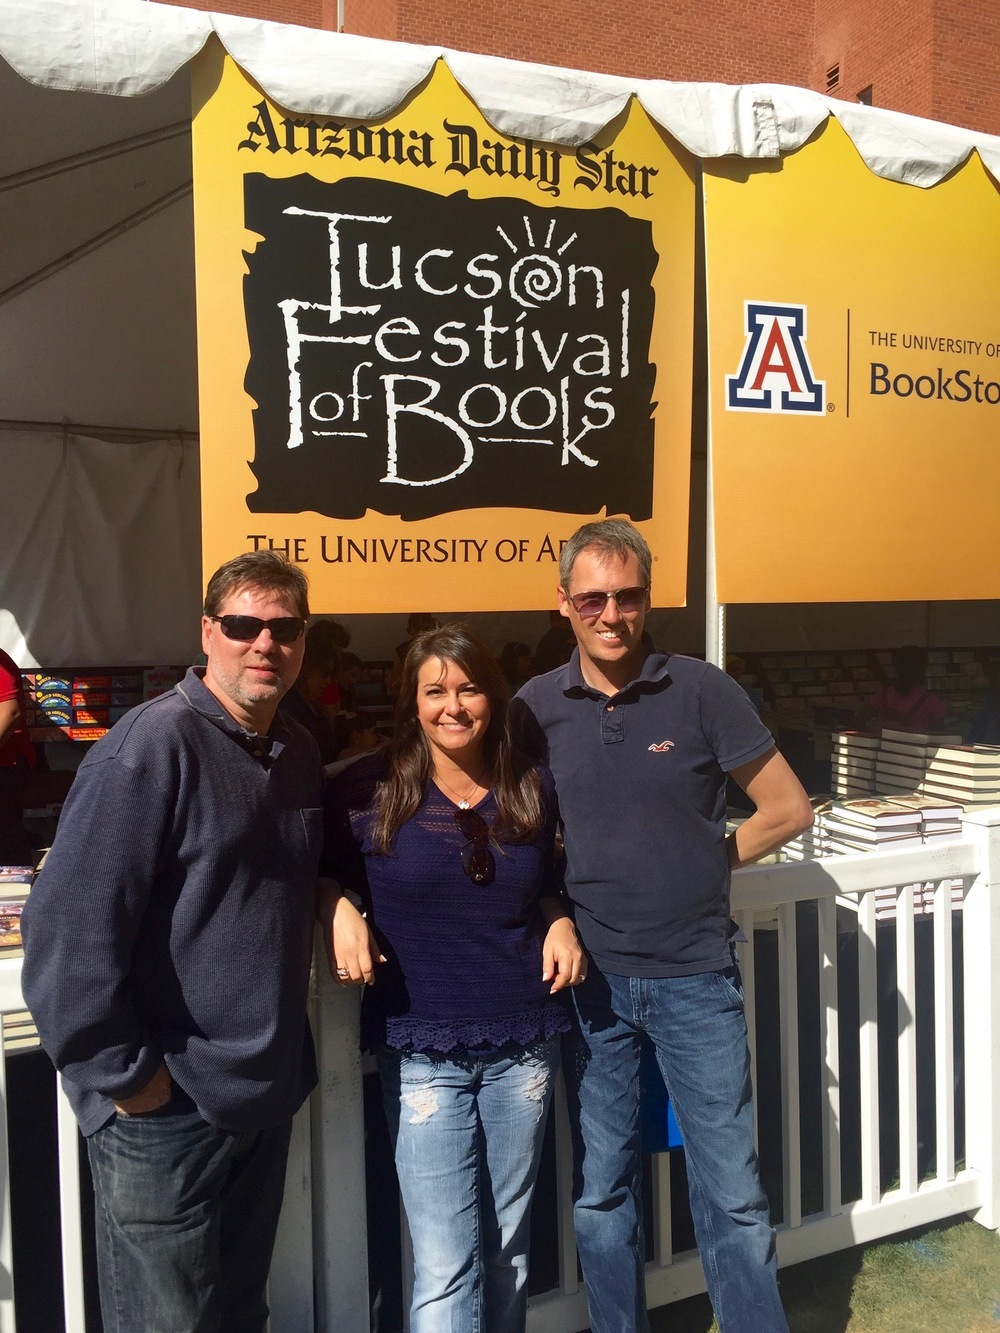 The Team at Tucson Festival of Books